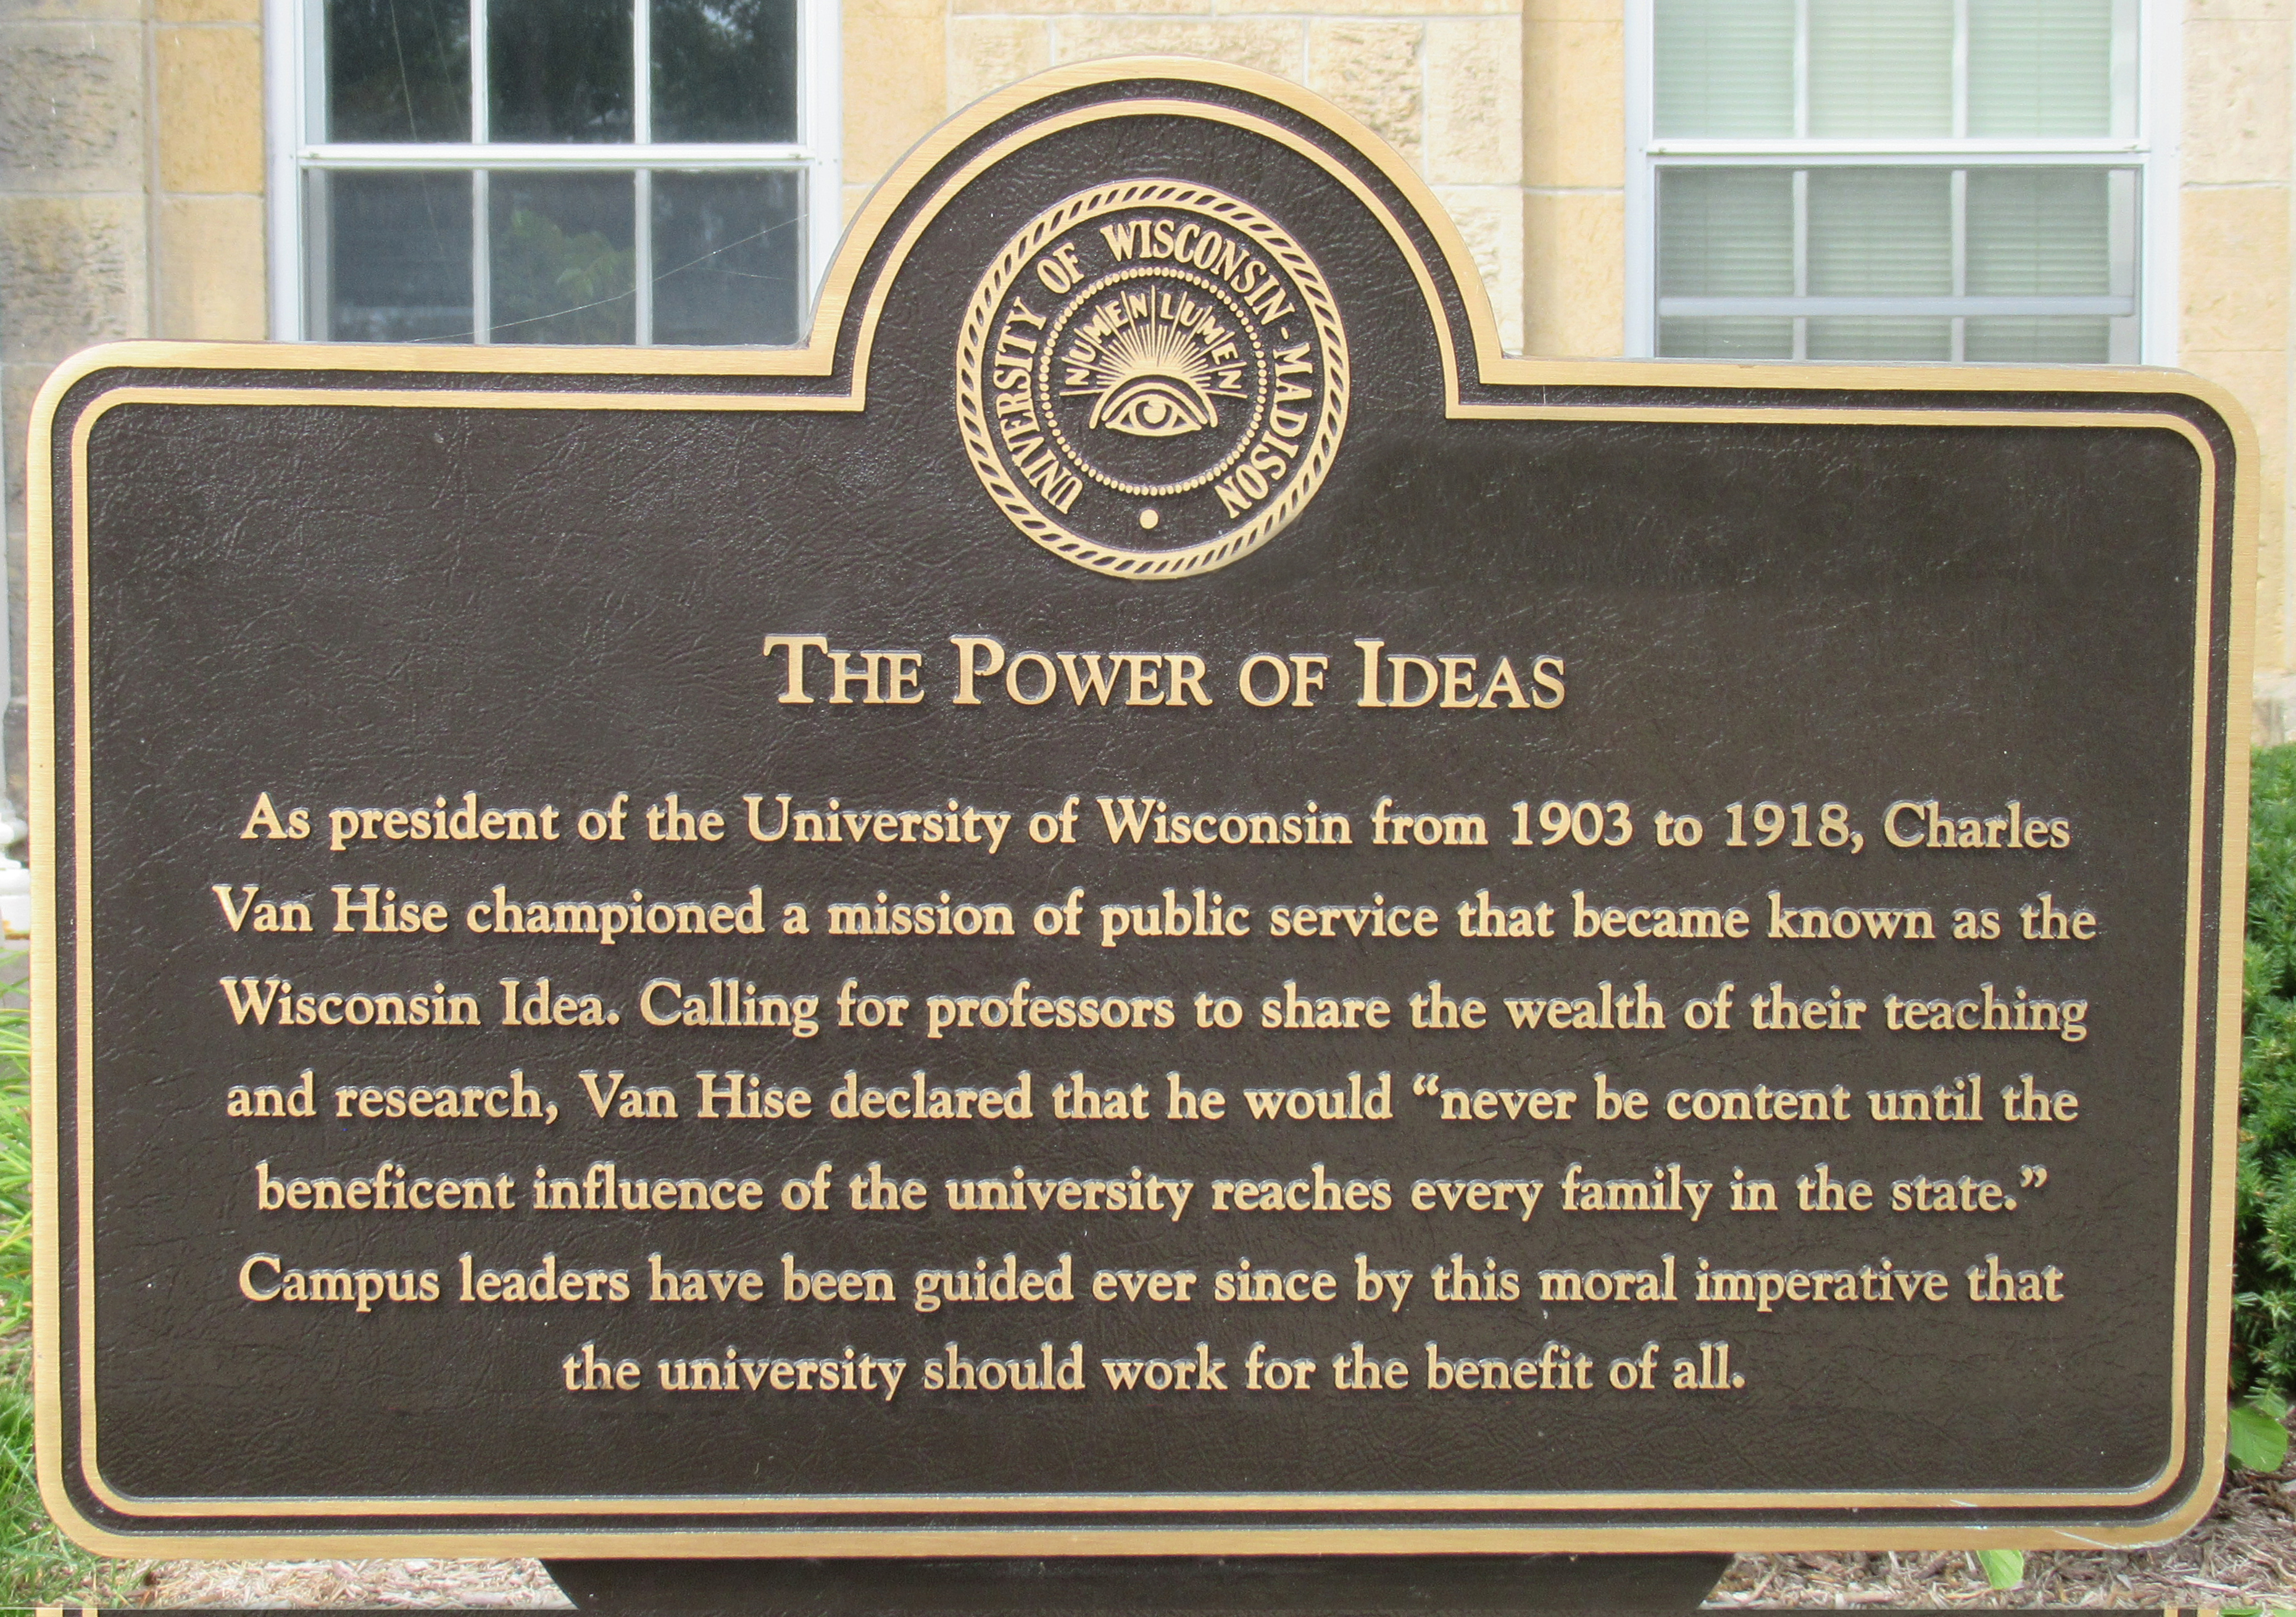 Bronze plaque of the Power of Ideas